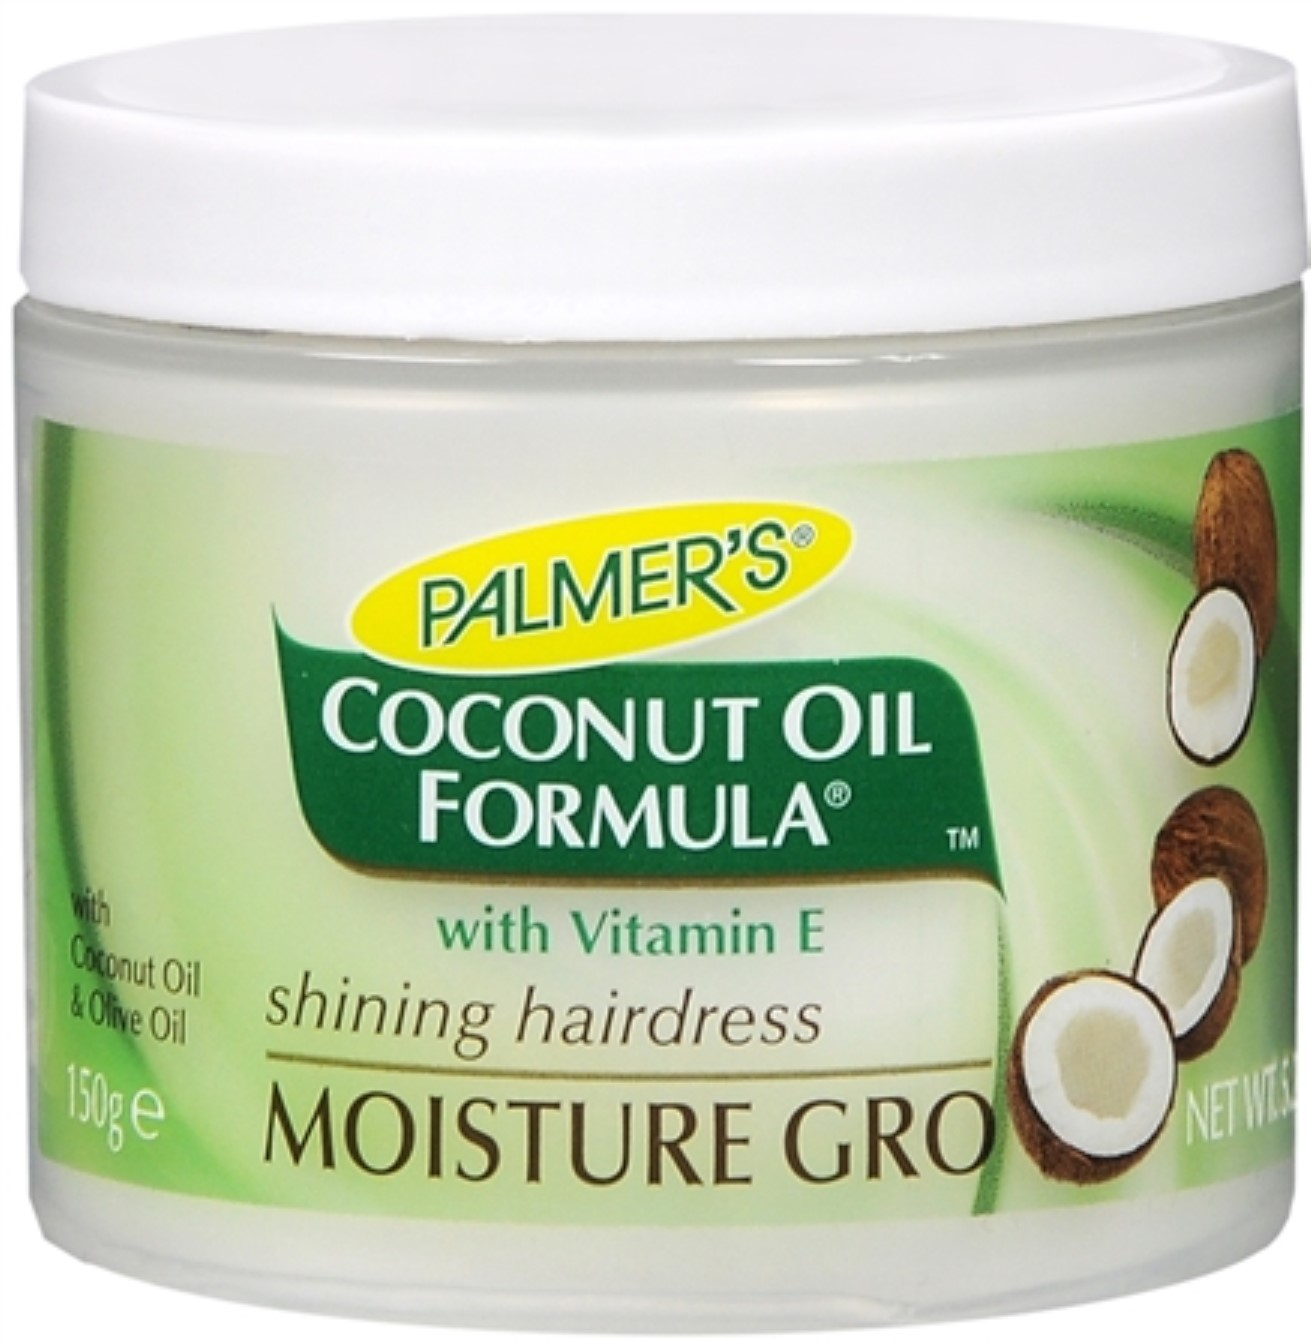 Palmer's Coconut Oil Formula Hair Conditioner 5.25 oz (Pack of 2)